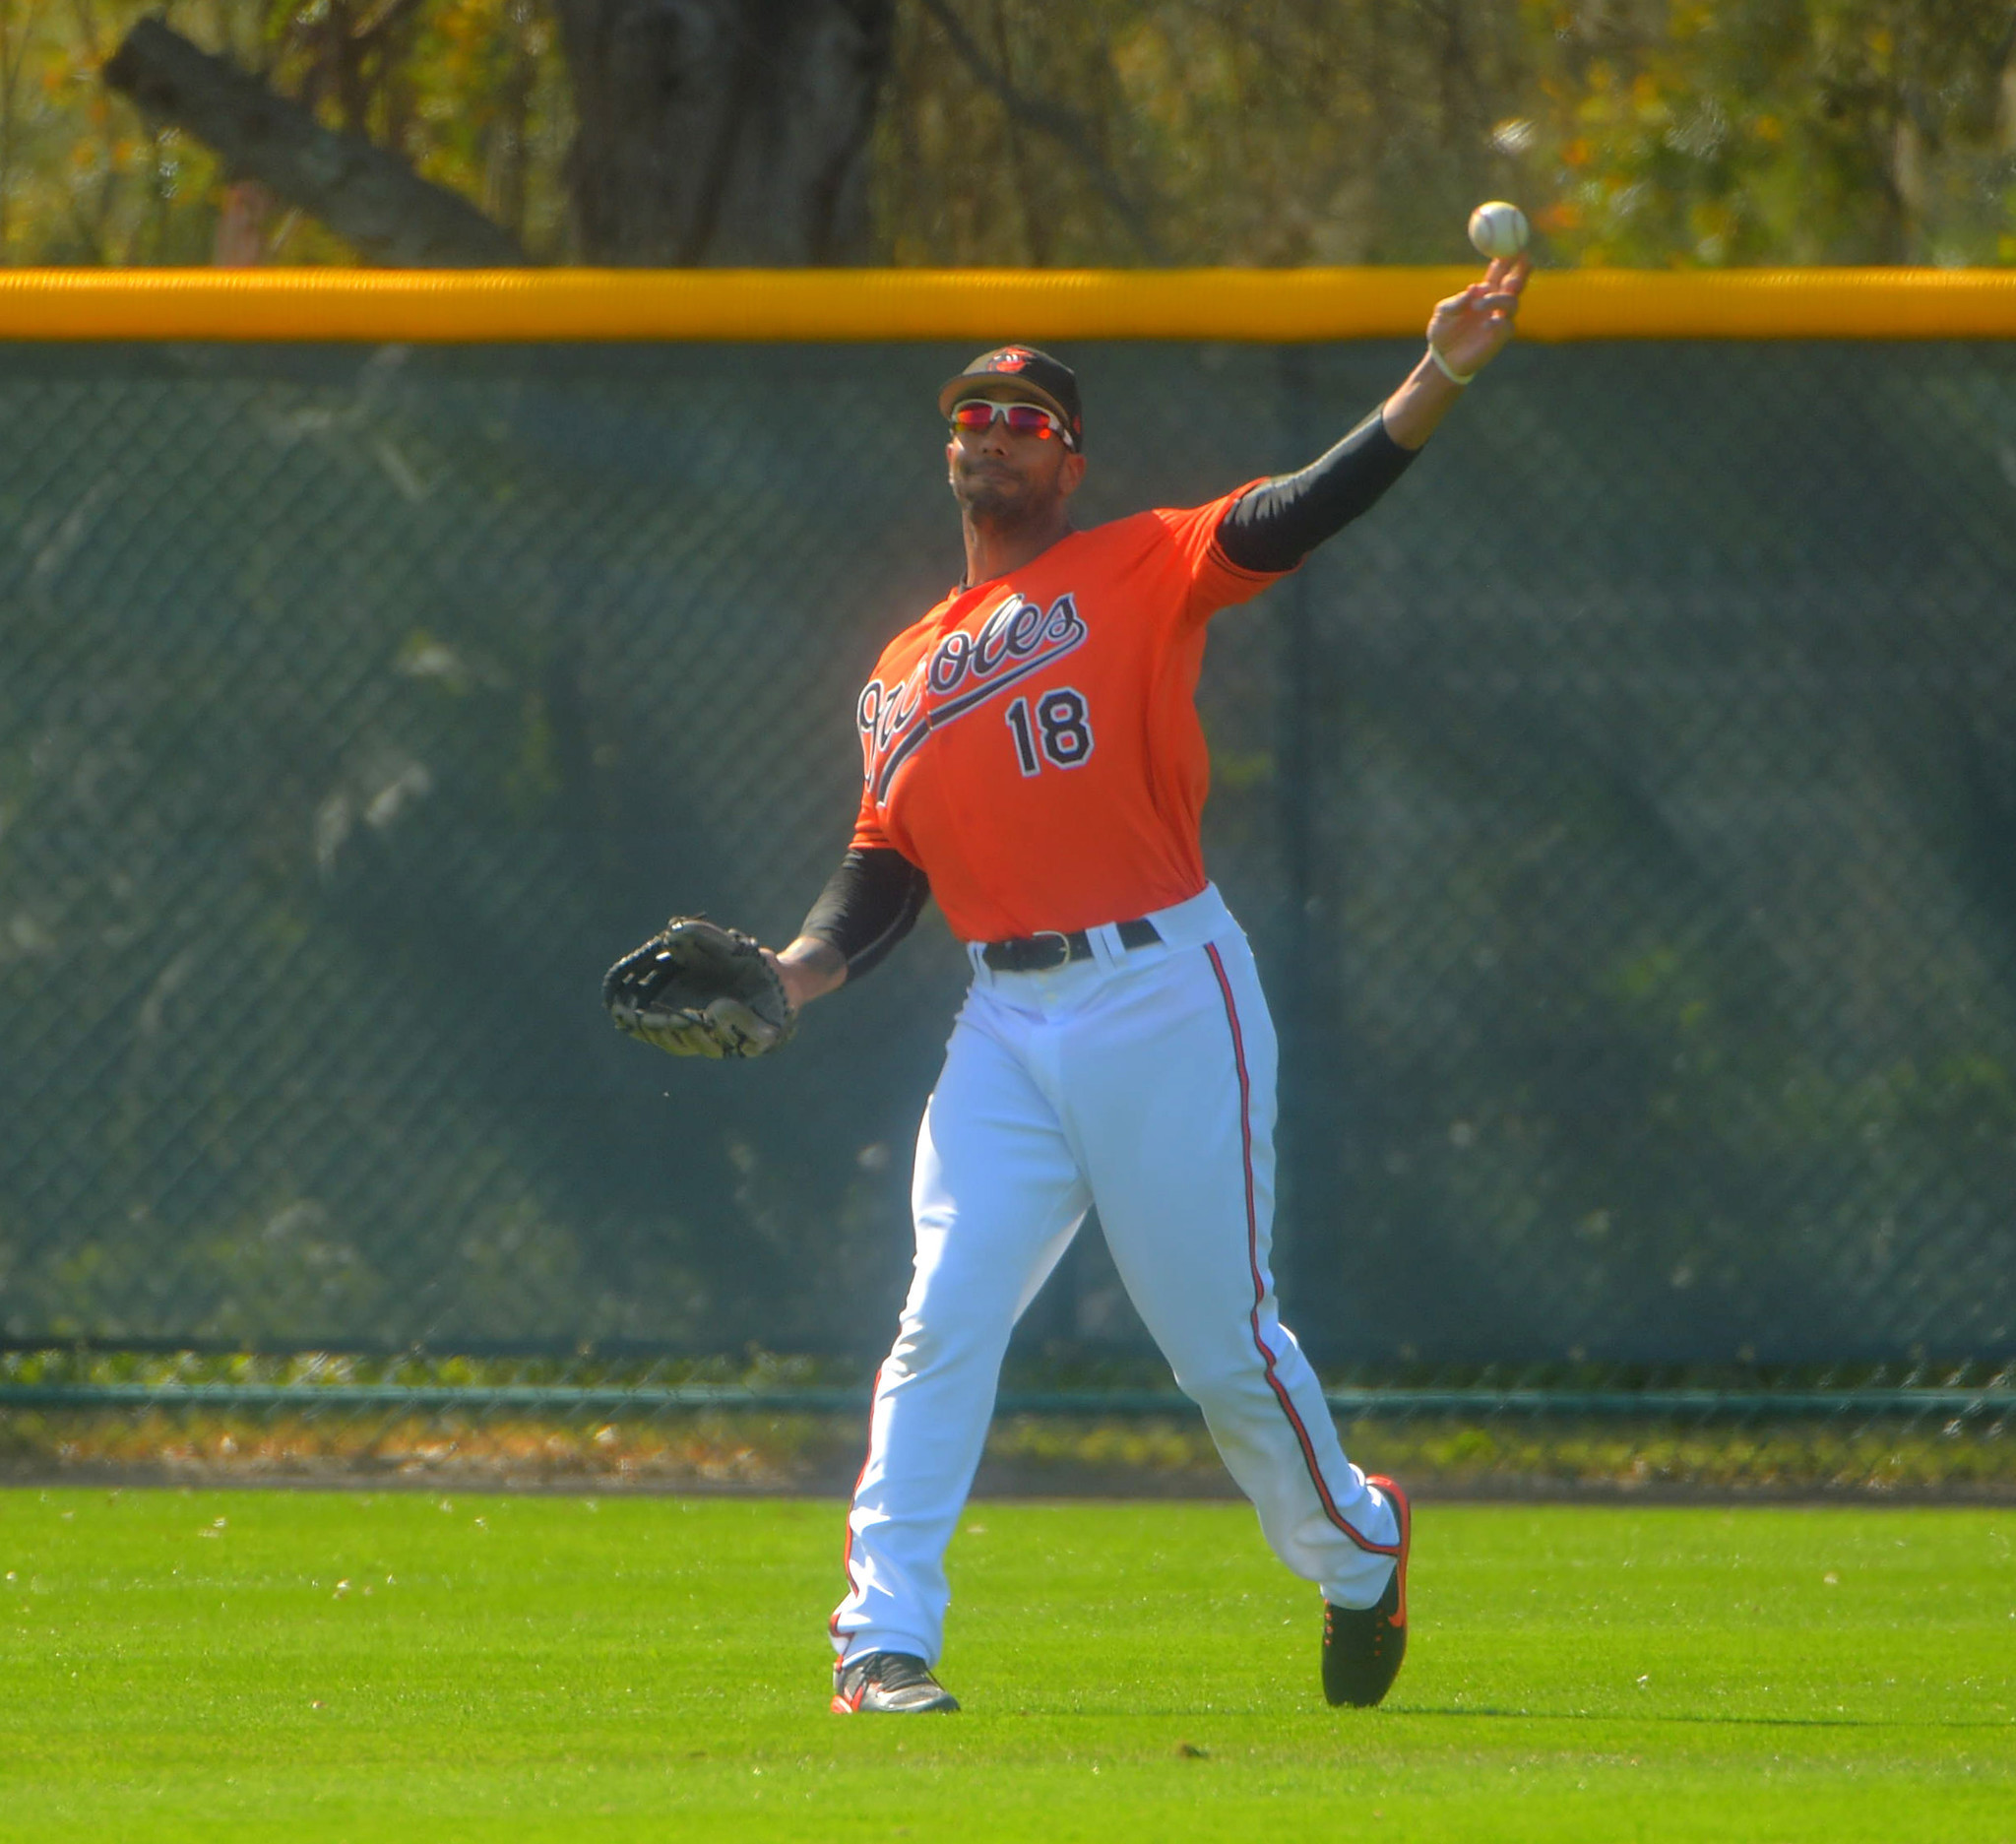 Bal-at-age-34-outfielder-chris-dickerson-opening-some-eyes-in-orioles-camp-20170301